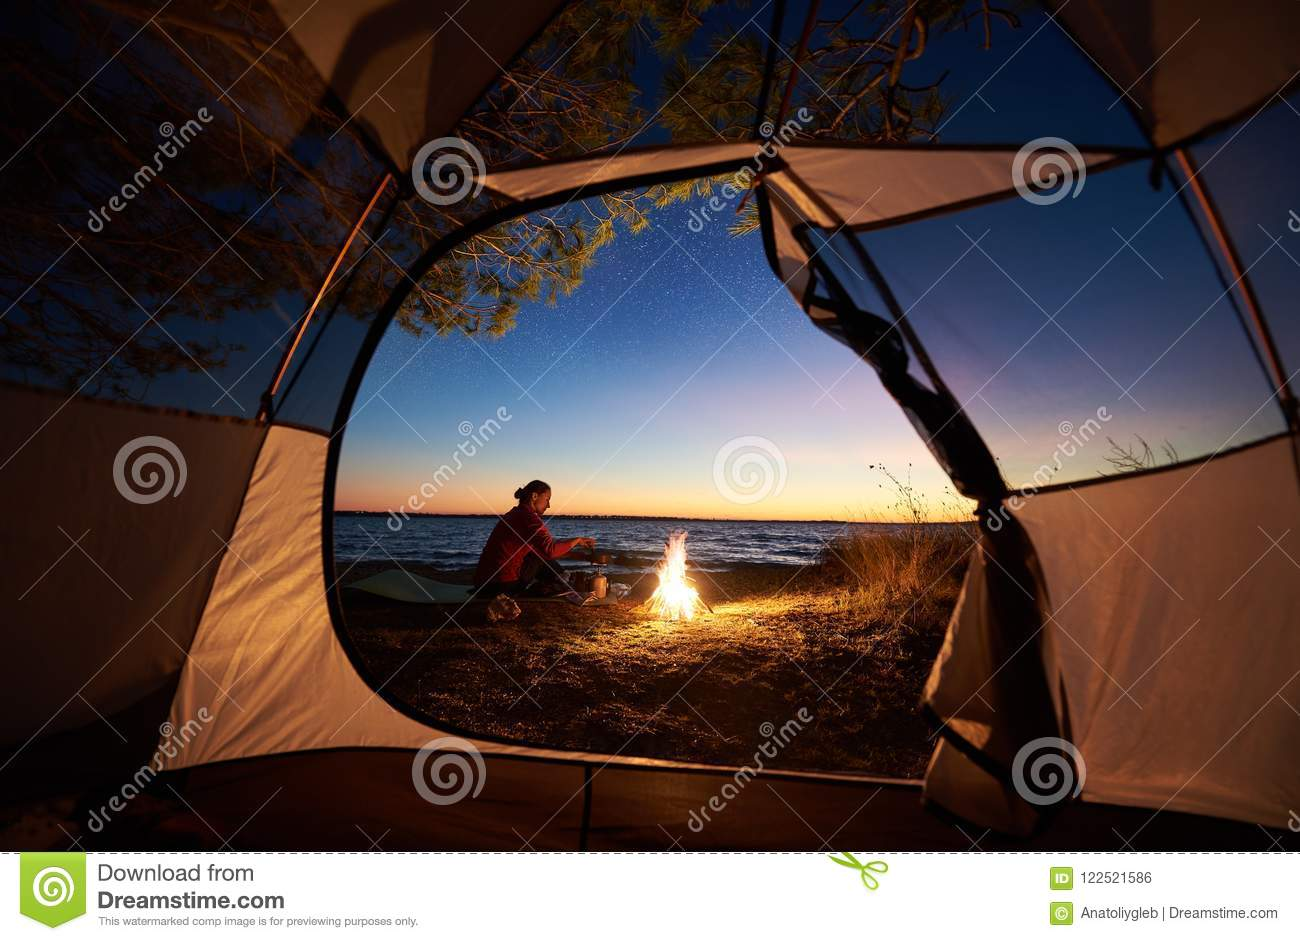 Woman having a rest at night camping near tourist tent, campfire on sea shore under starry sky